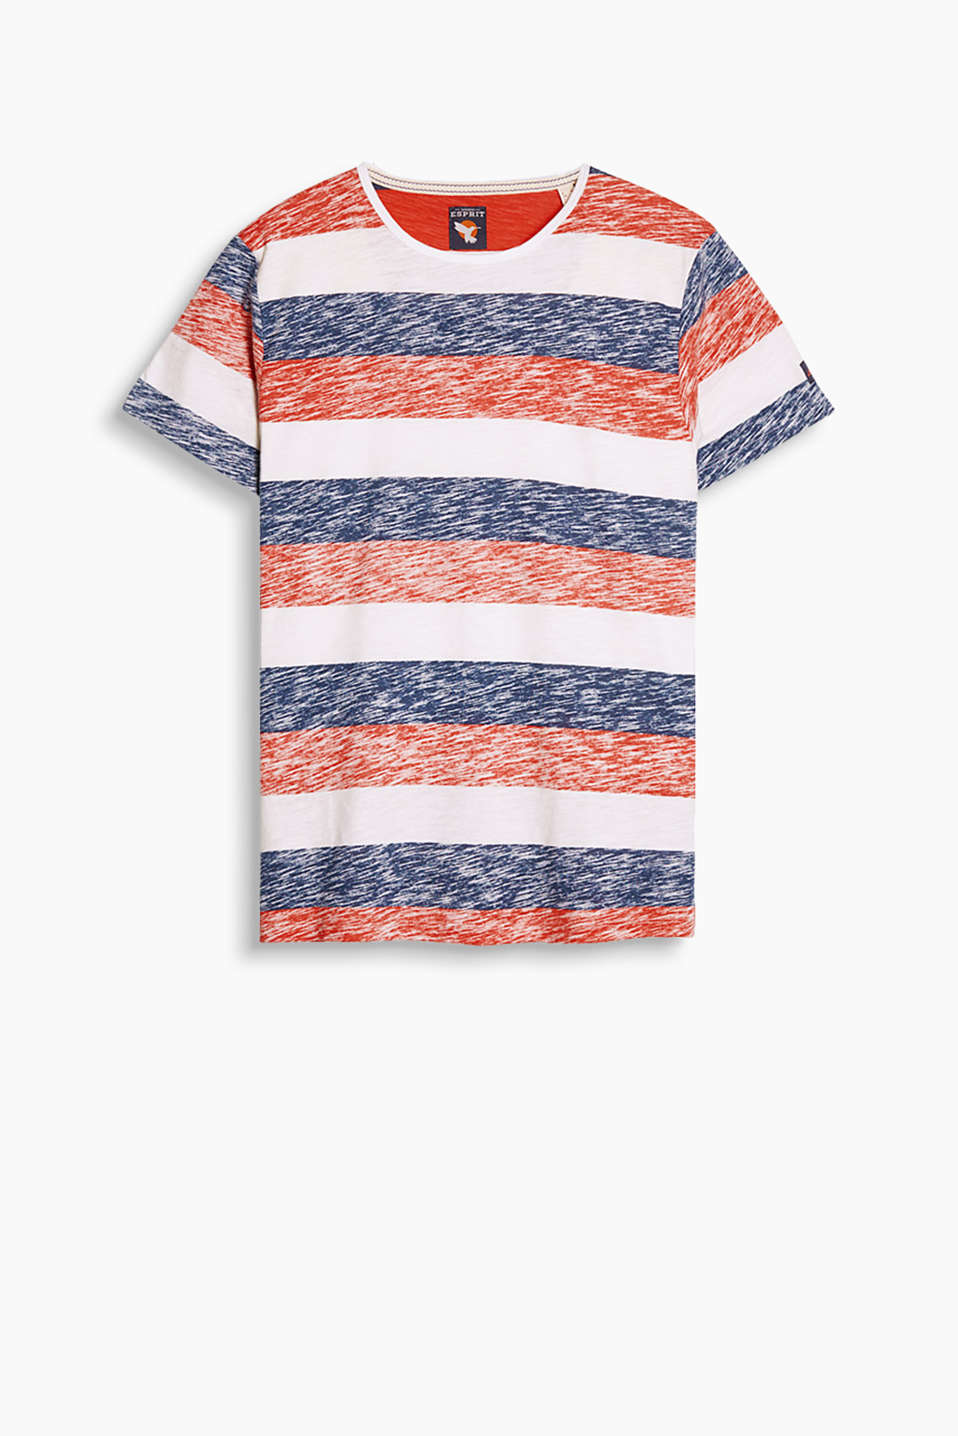 Crew neck T-shirt with trendy block stripes